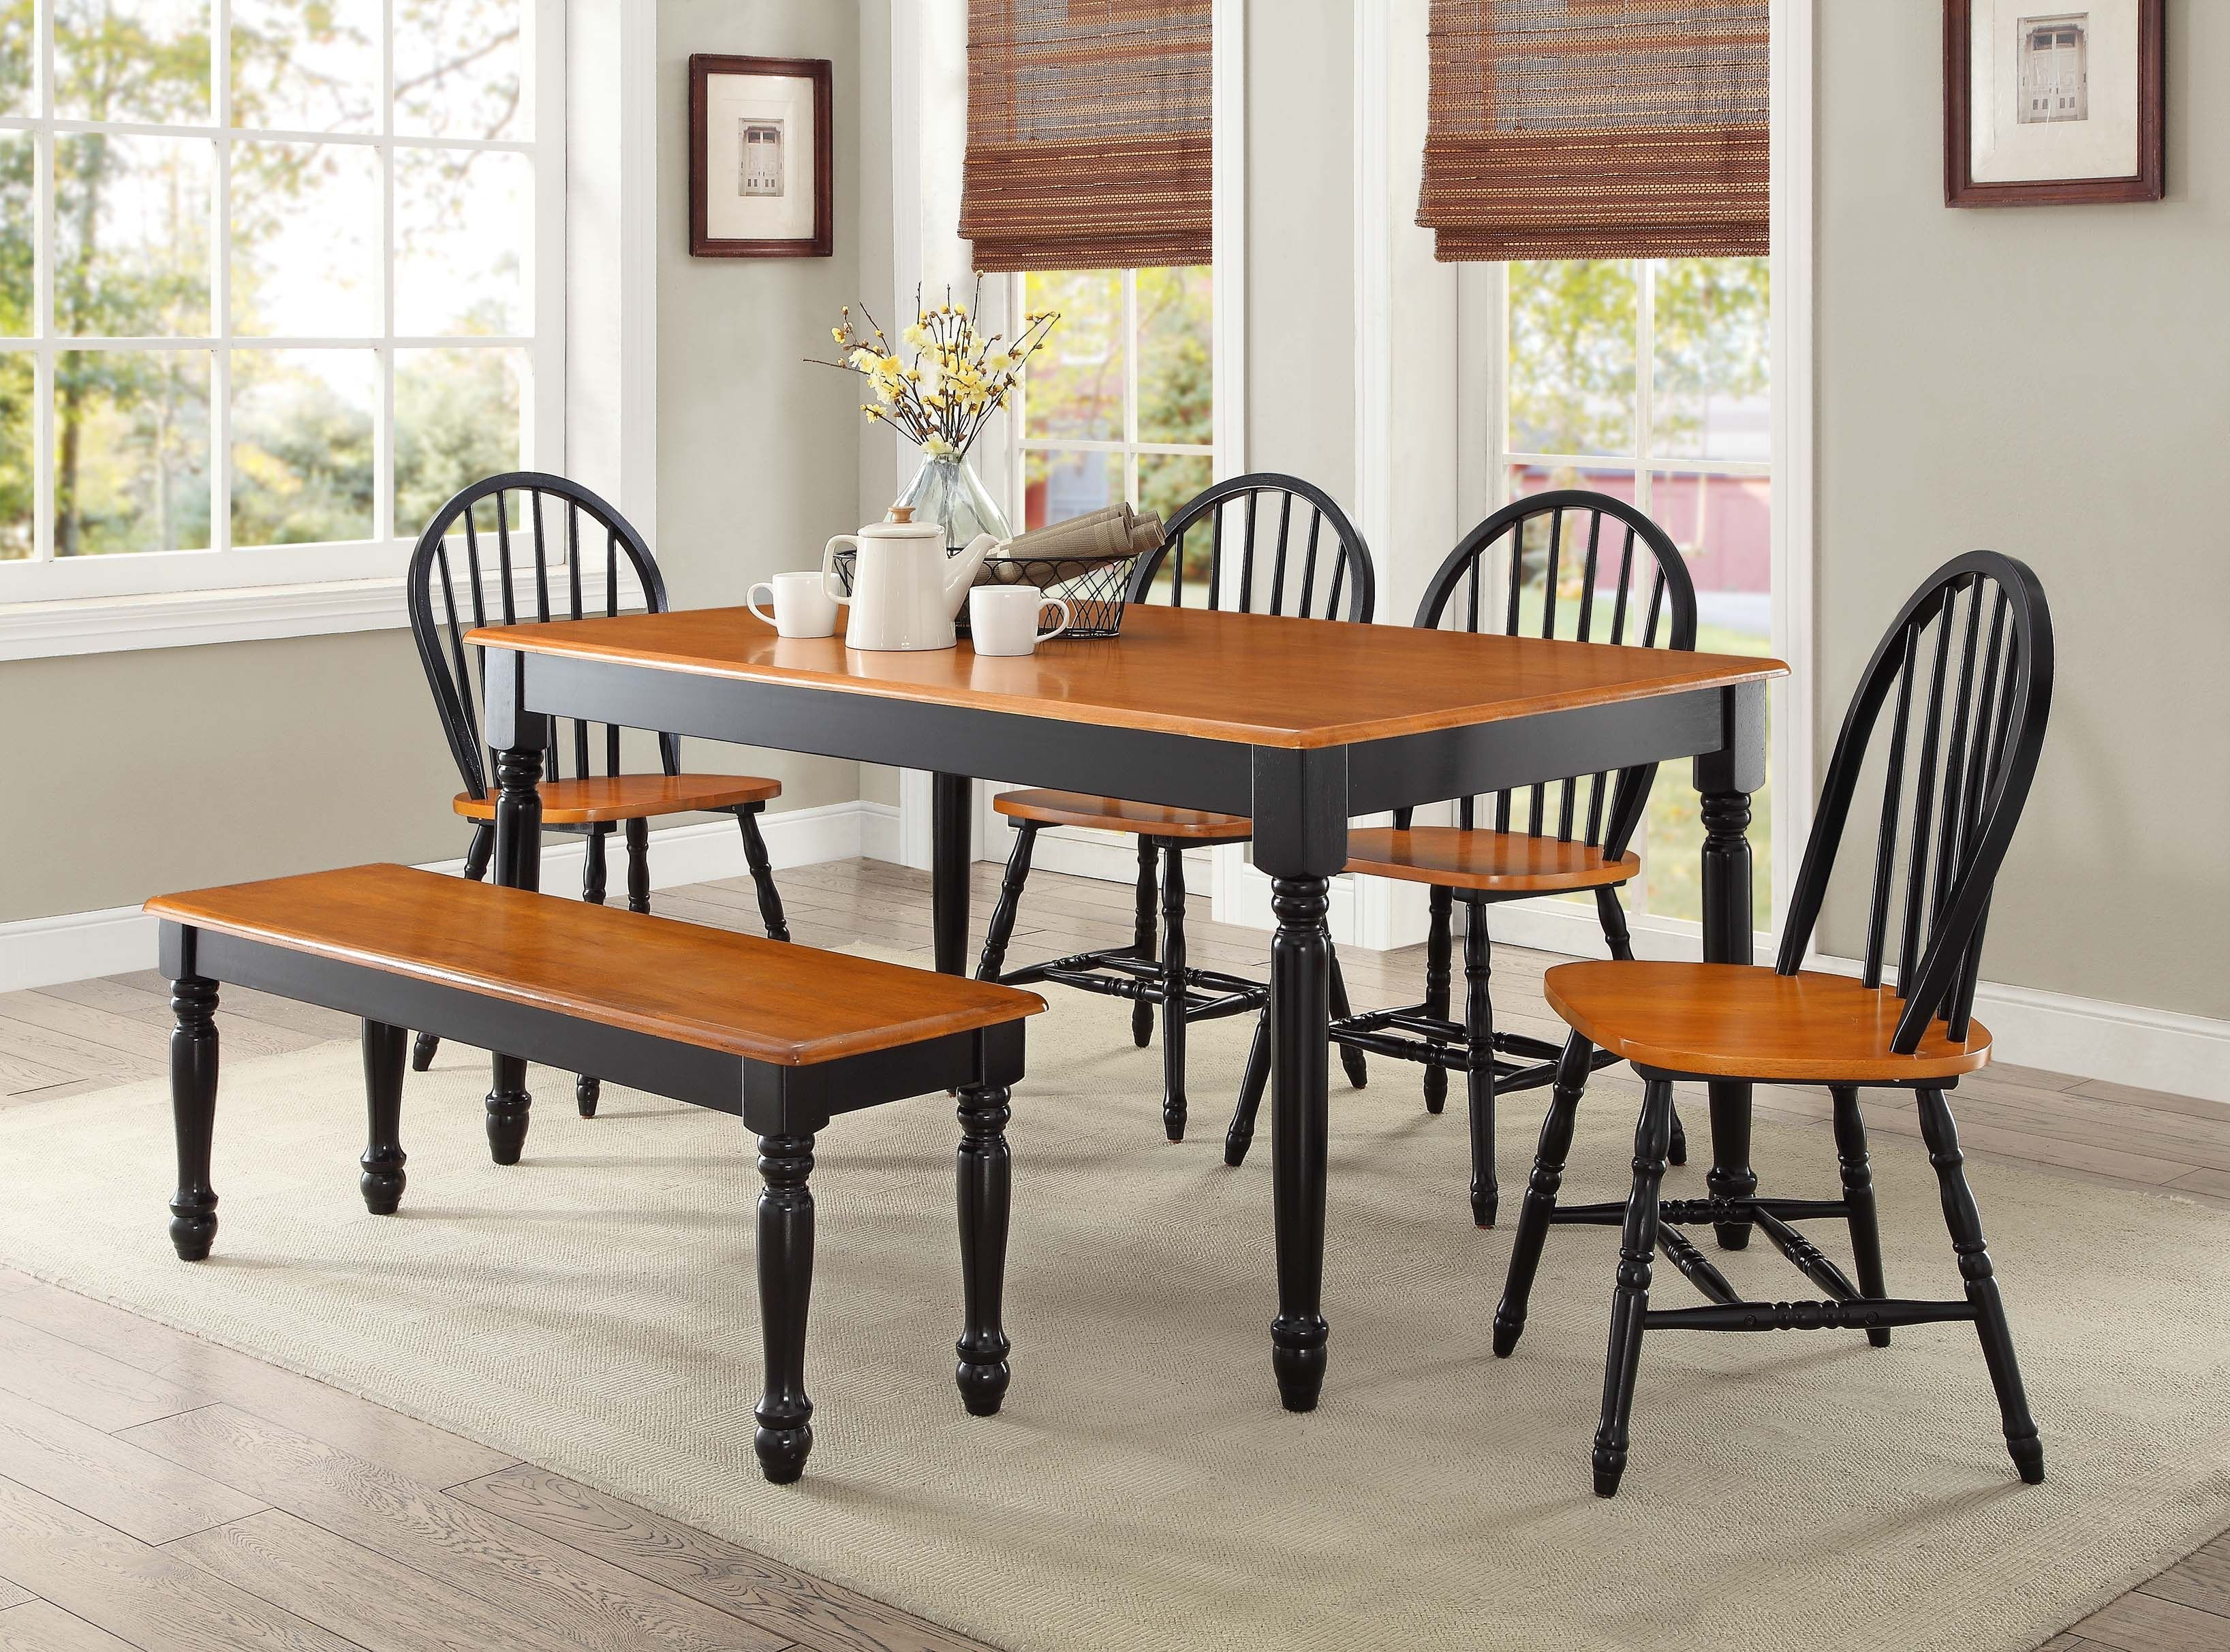 Kitchen And Dining Room Tables And Chairs  Httpsodakaustica Pleasing Cheap Dining Room Table And Chair Sets Decorating Inspiration